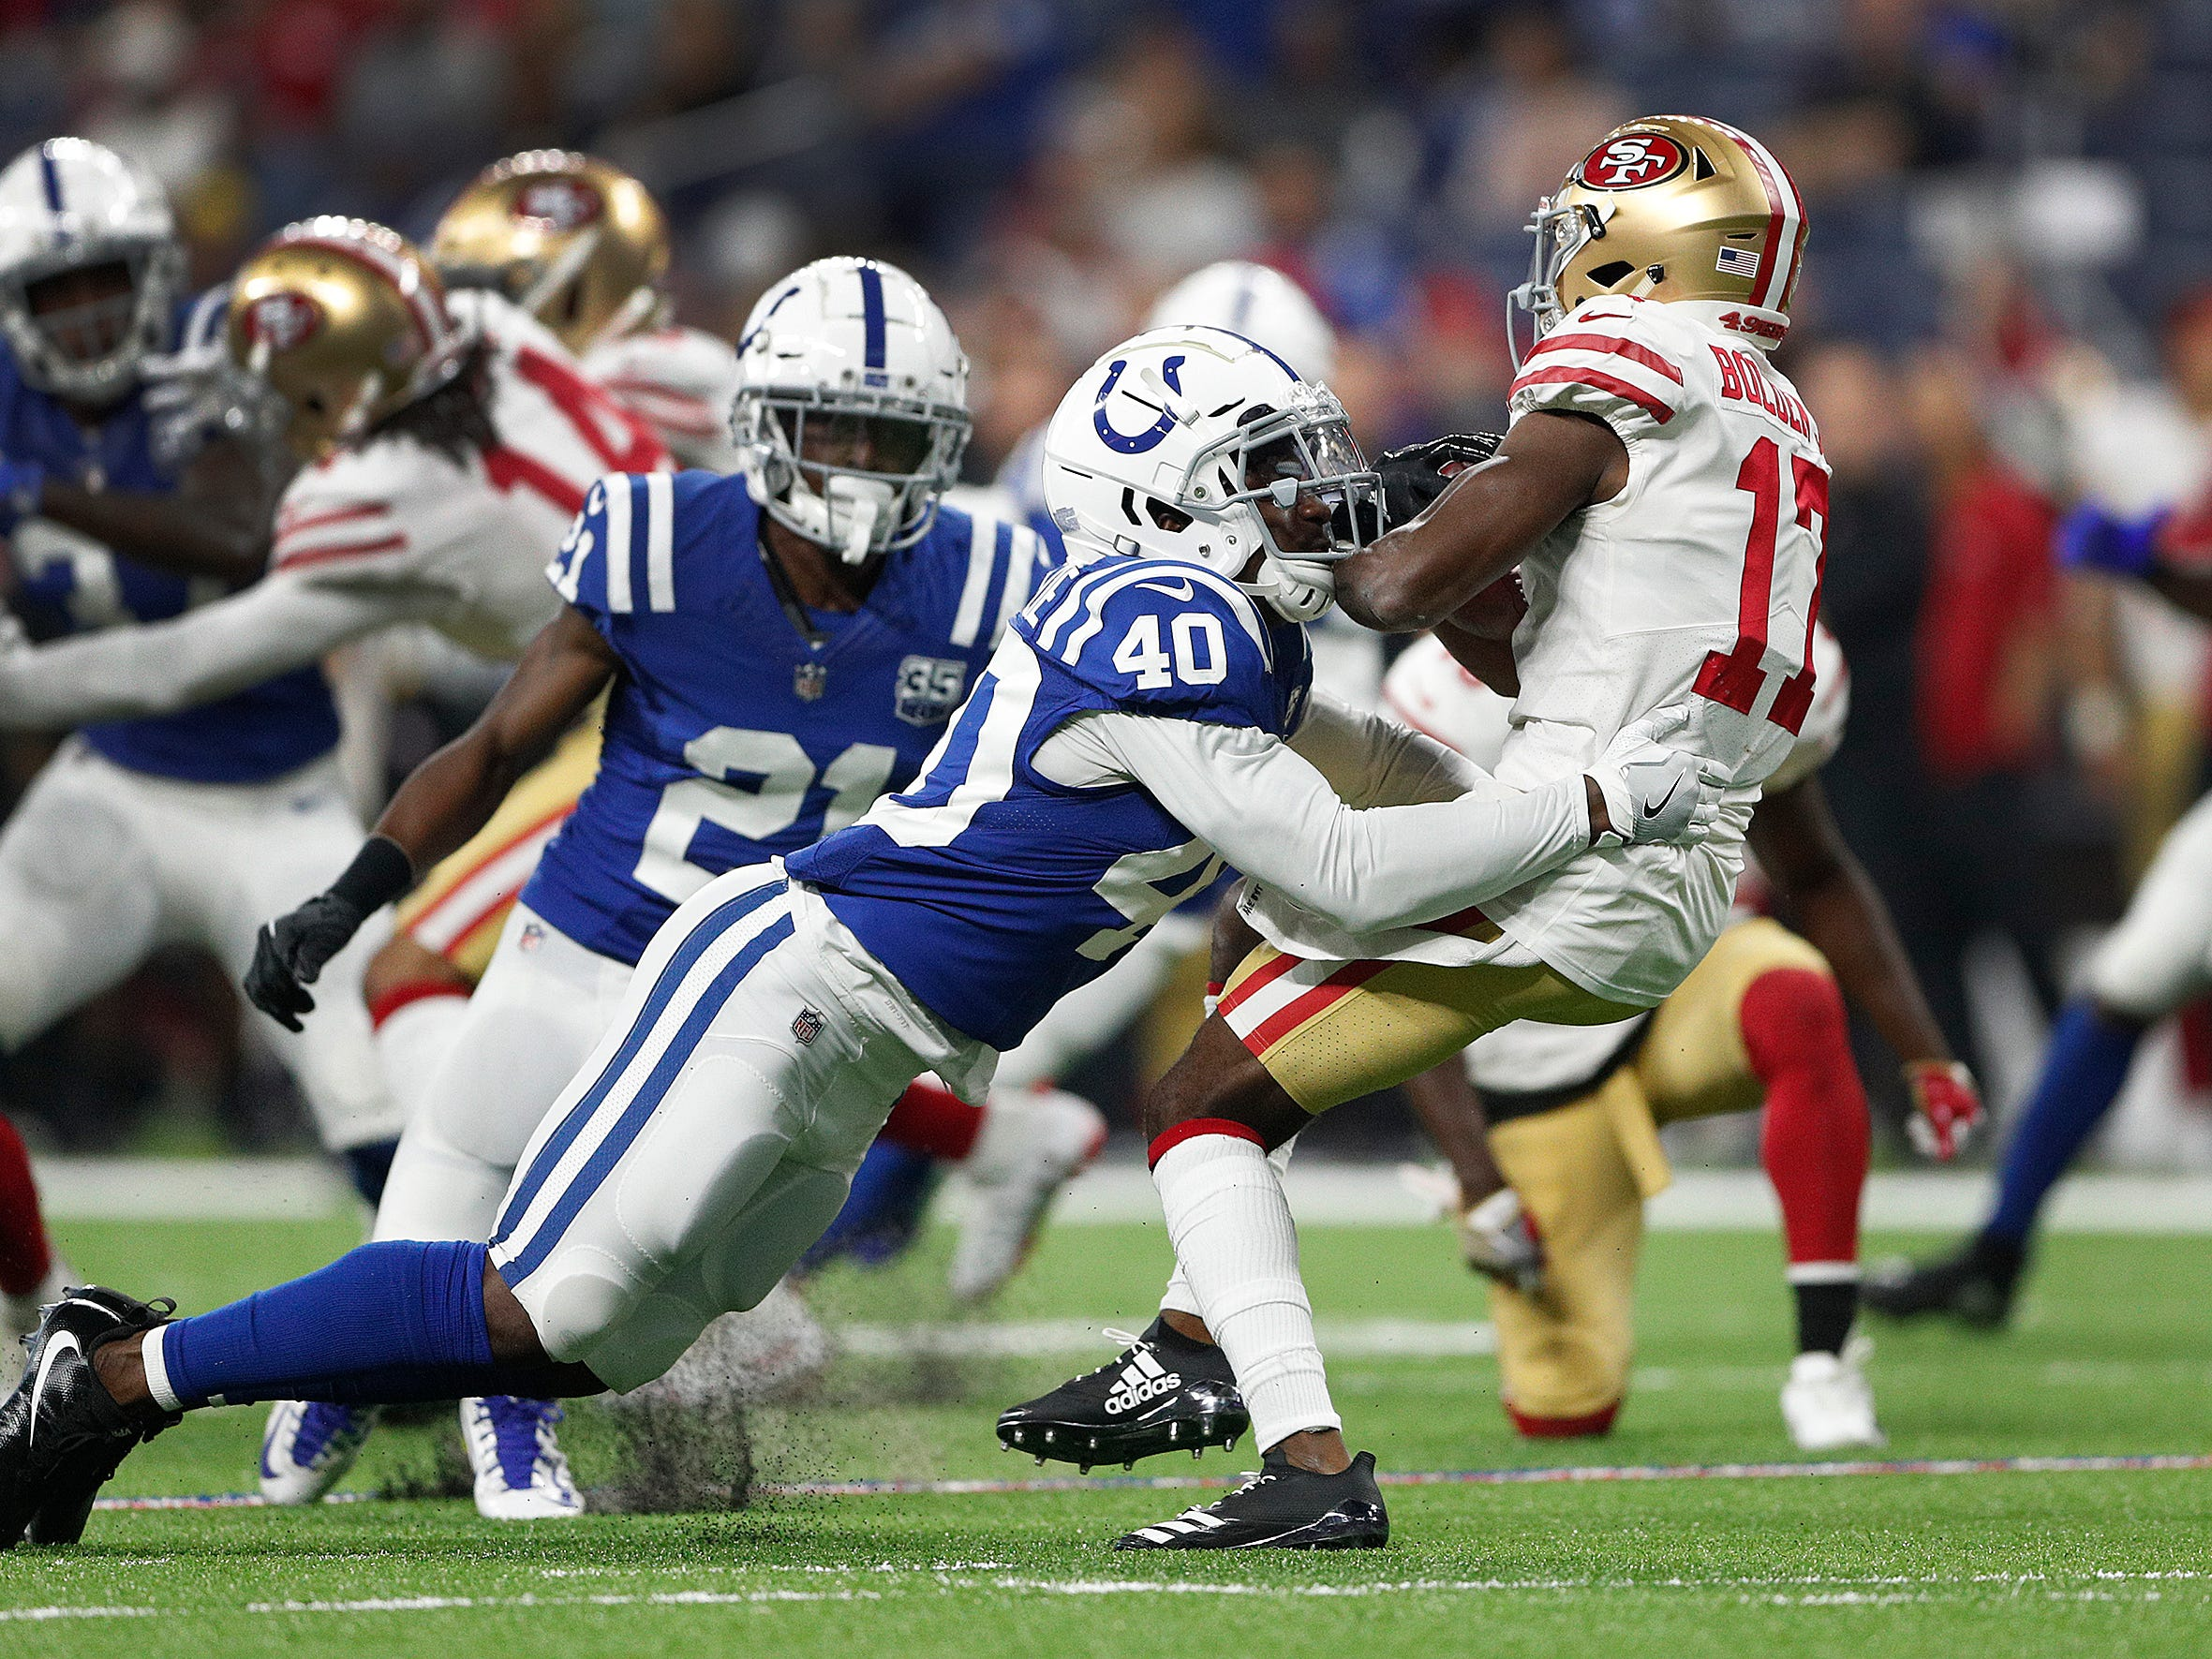 Indianapolis Colts Braden Oliver (40) hits San Francisco 49ers Victor Bolden (17) on a kickoff return in the second half of their preseason football game at Lucas Oil Stadium Saturday, August 25, 2018. The Colts defeated the 49ers 23-17.